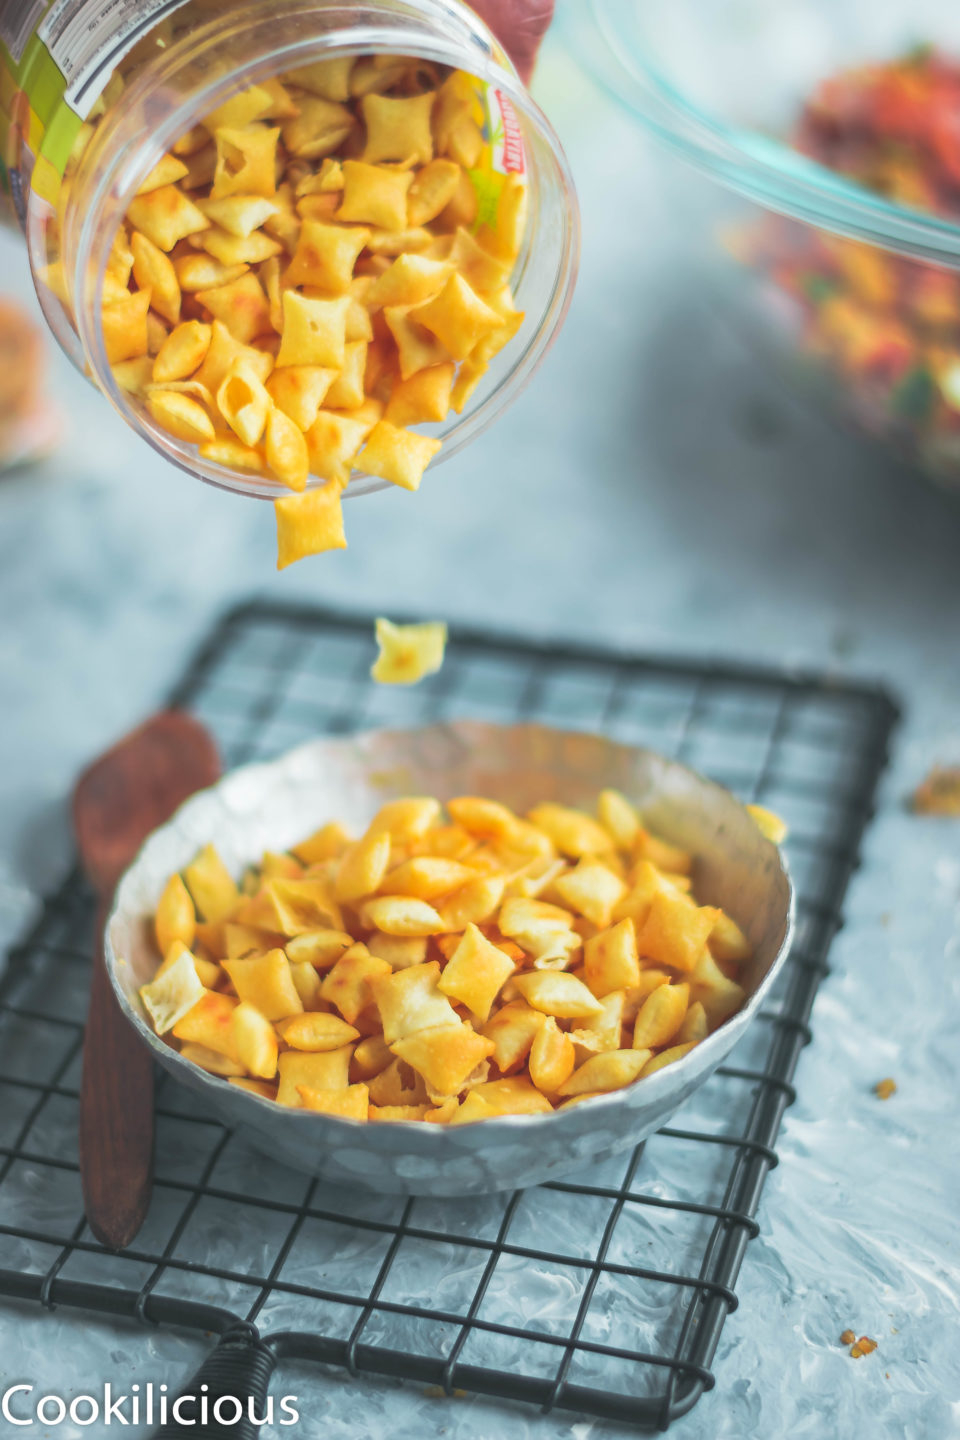 a hand pouring a bottle full of cheeselings onto a bowl